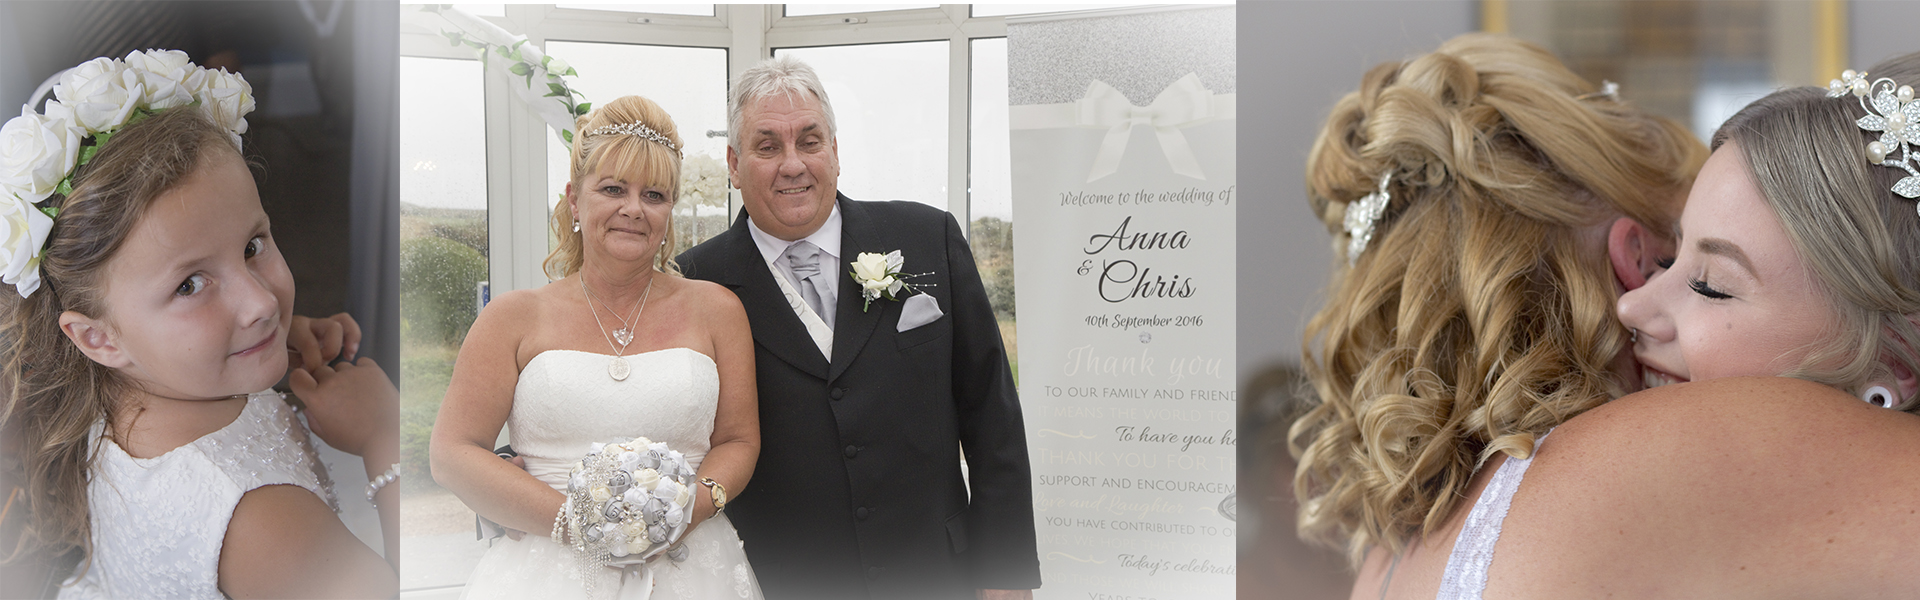 The wedding of Anna & Chris at the North Shore Hotel in Skegness